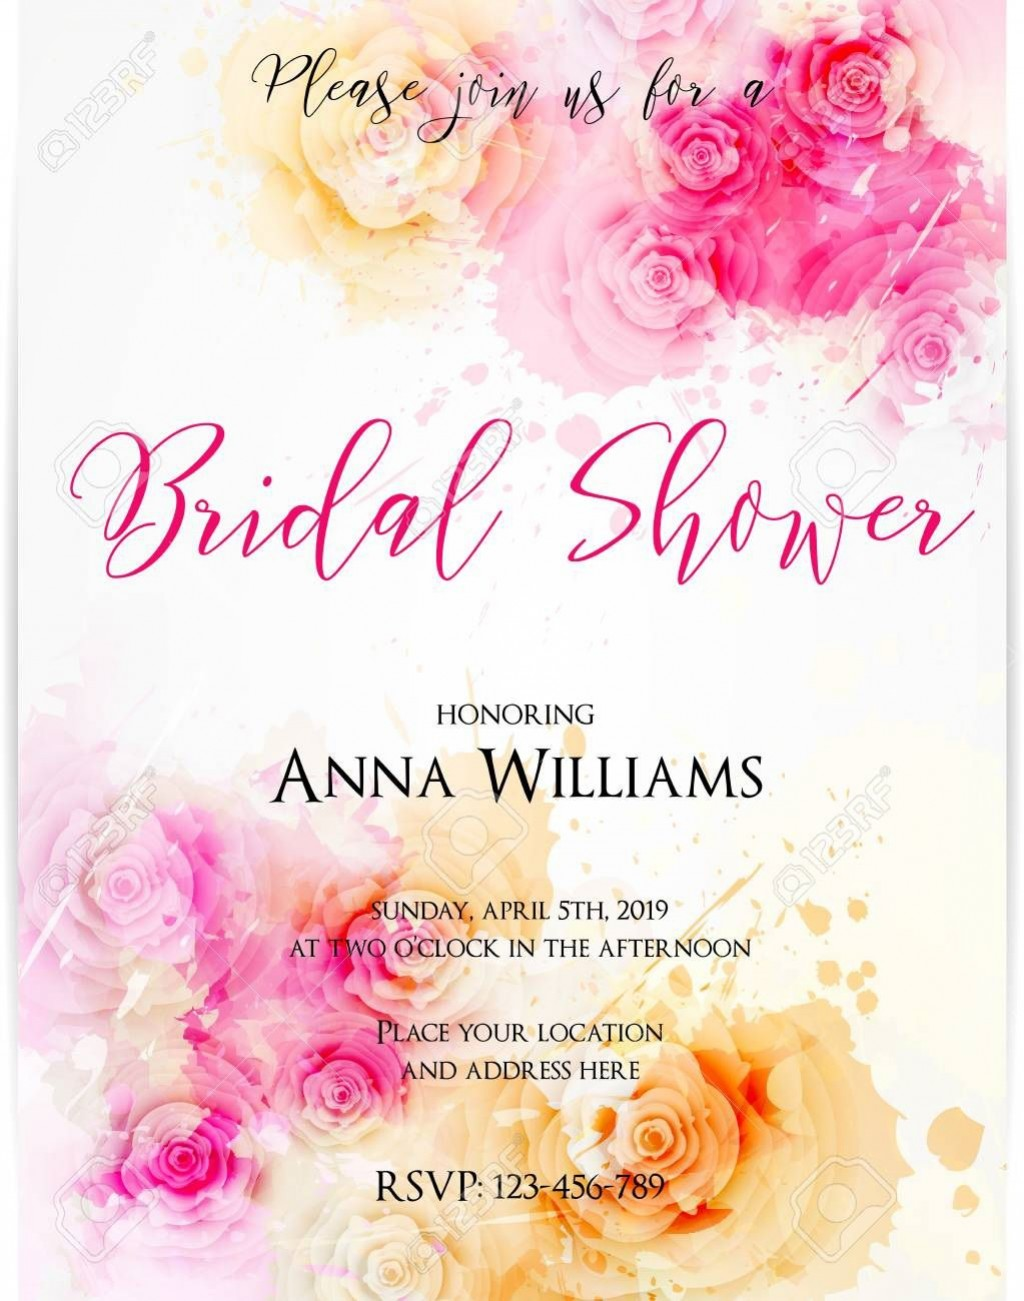 004 Excellent Wedding Shower Invitation Template Image  Templates Bridal Pinterest Microsoft Word Free ForLarge